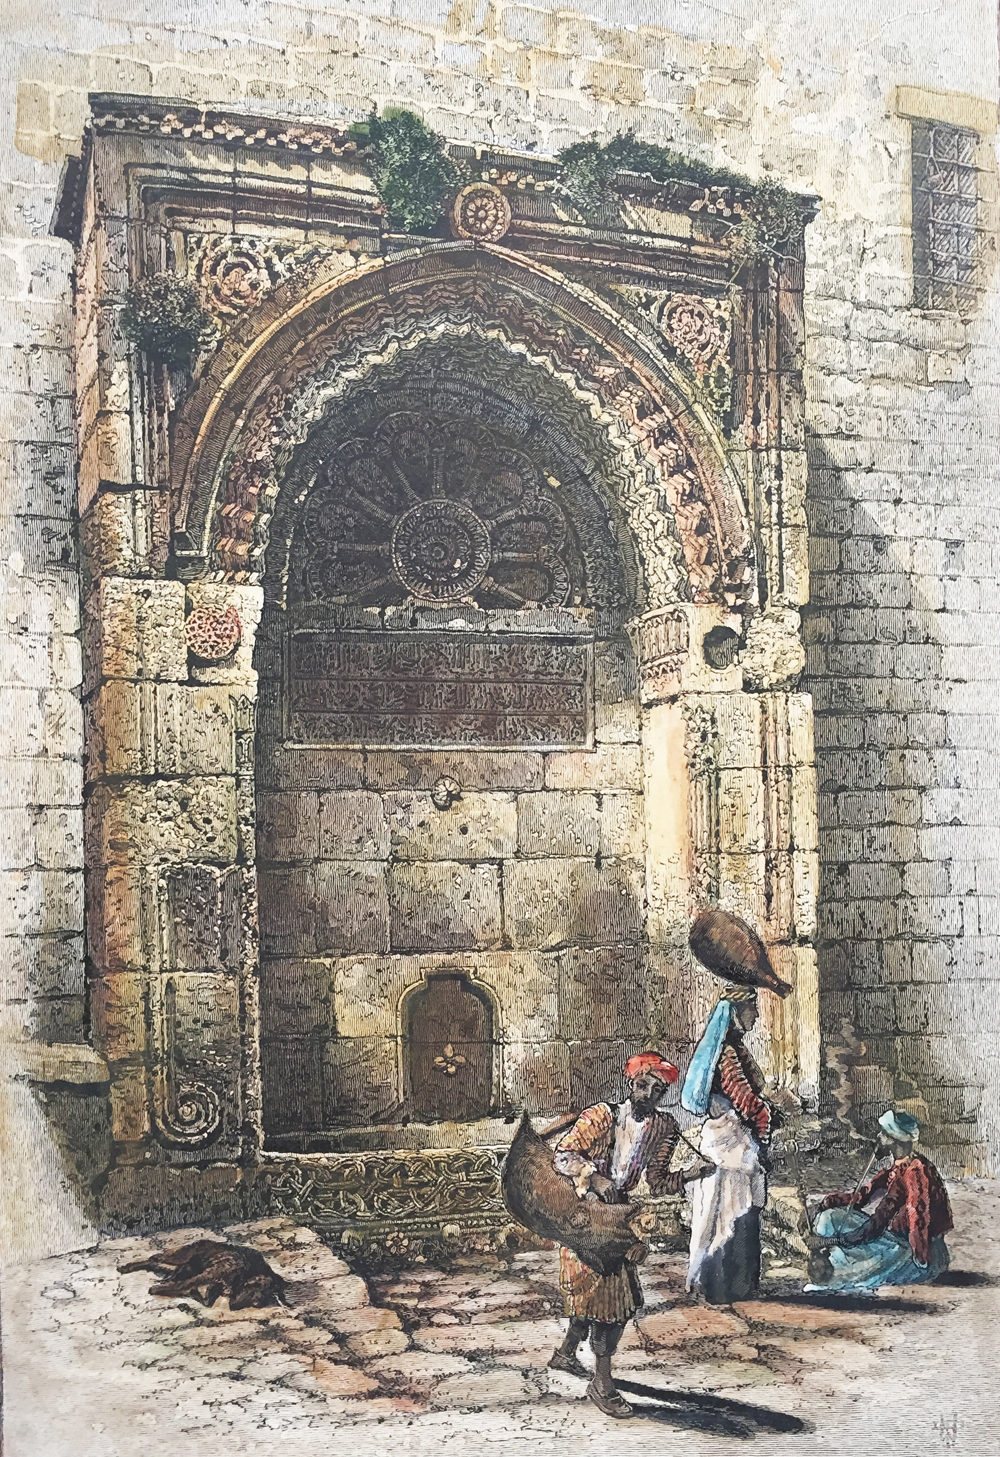 FOUNTAIN OF THE GATE OF THE CHAIN – JERUSALEM